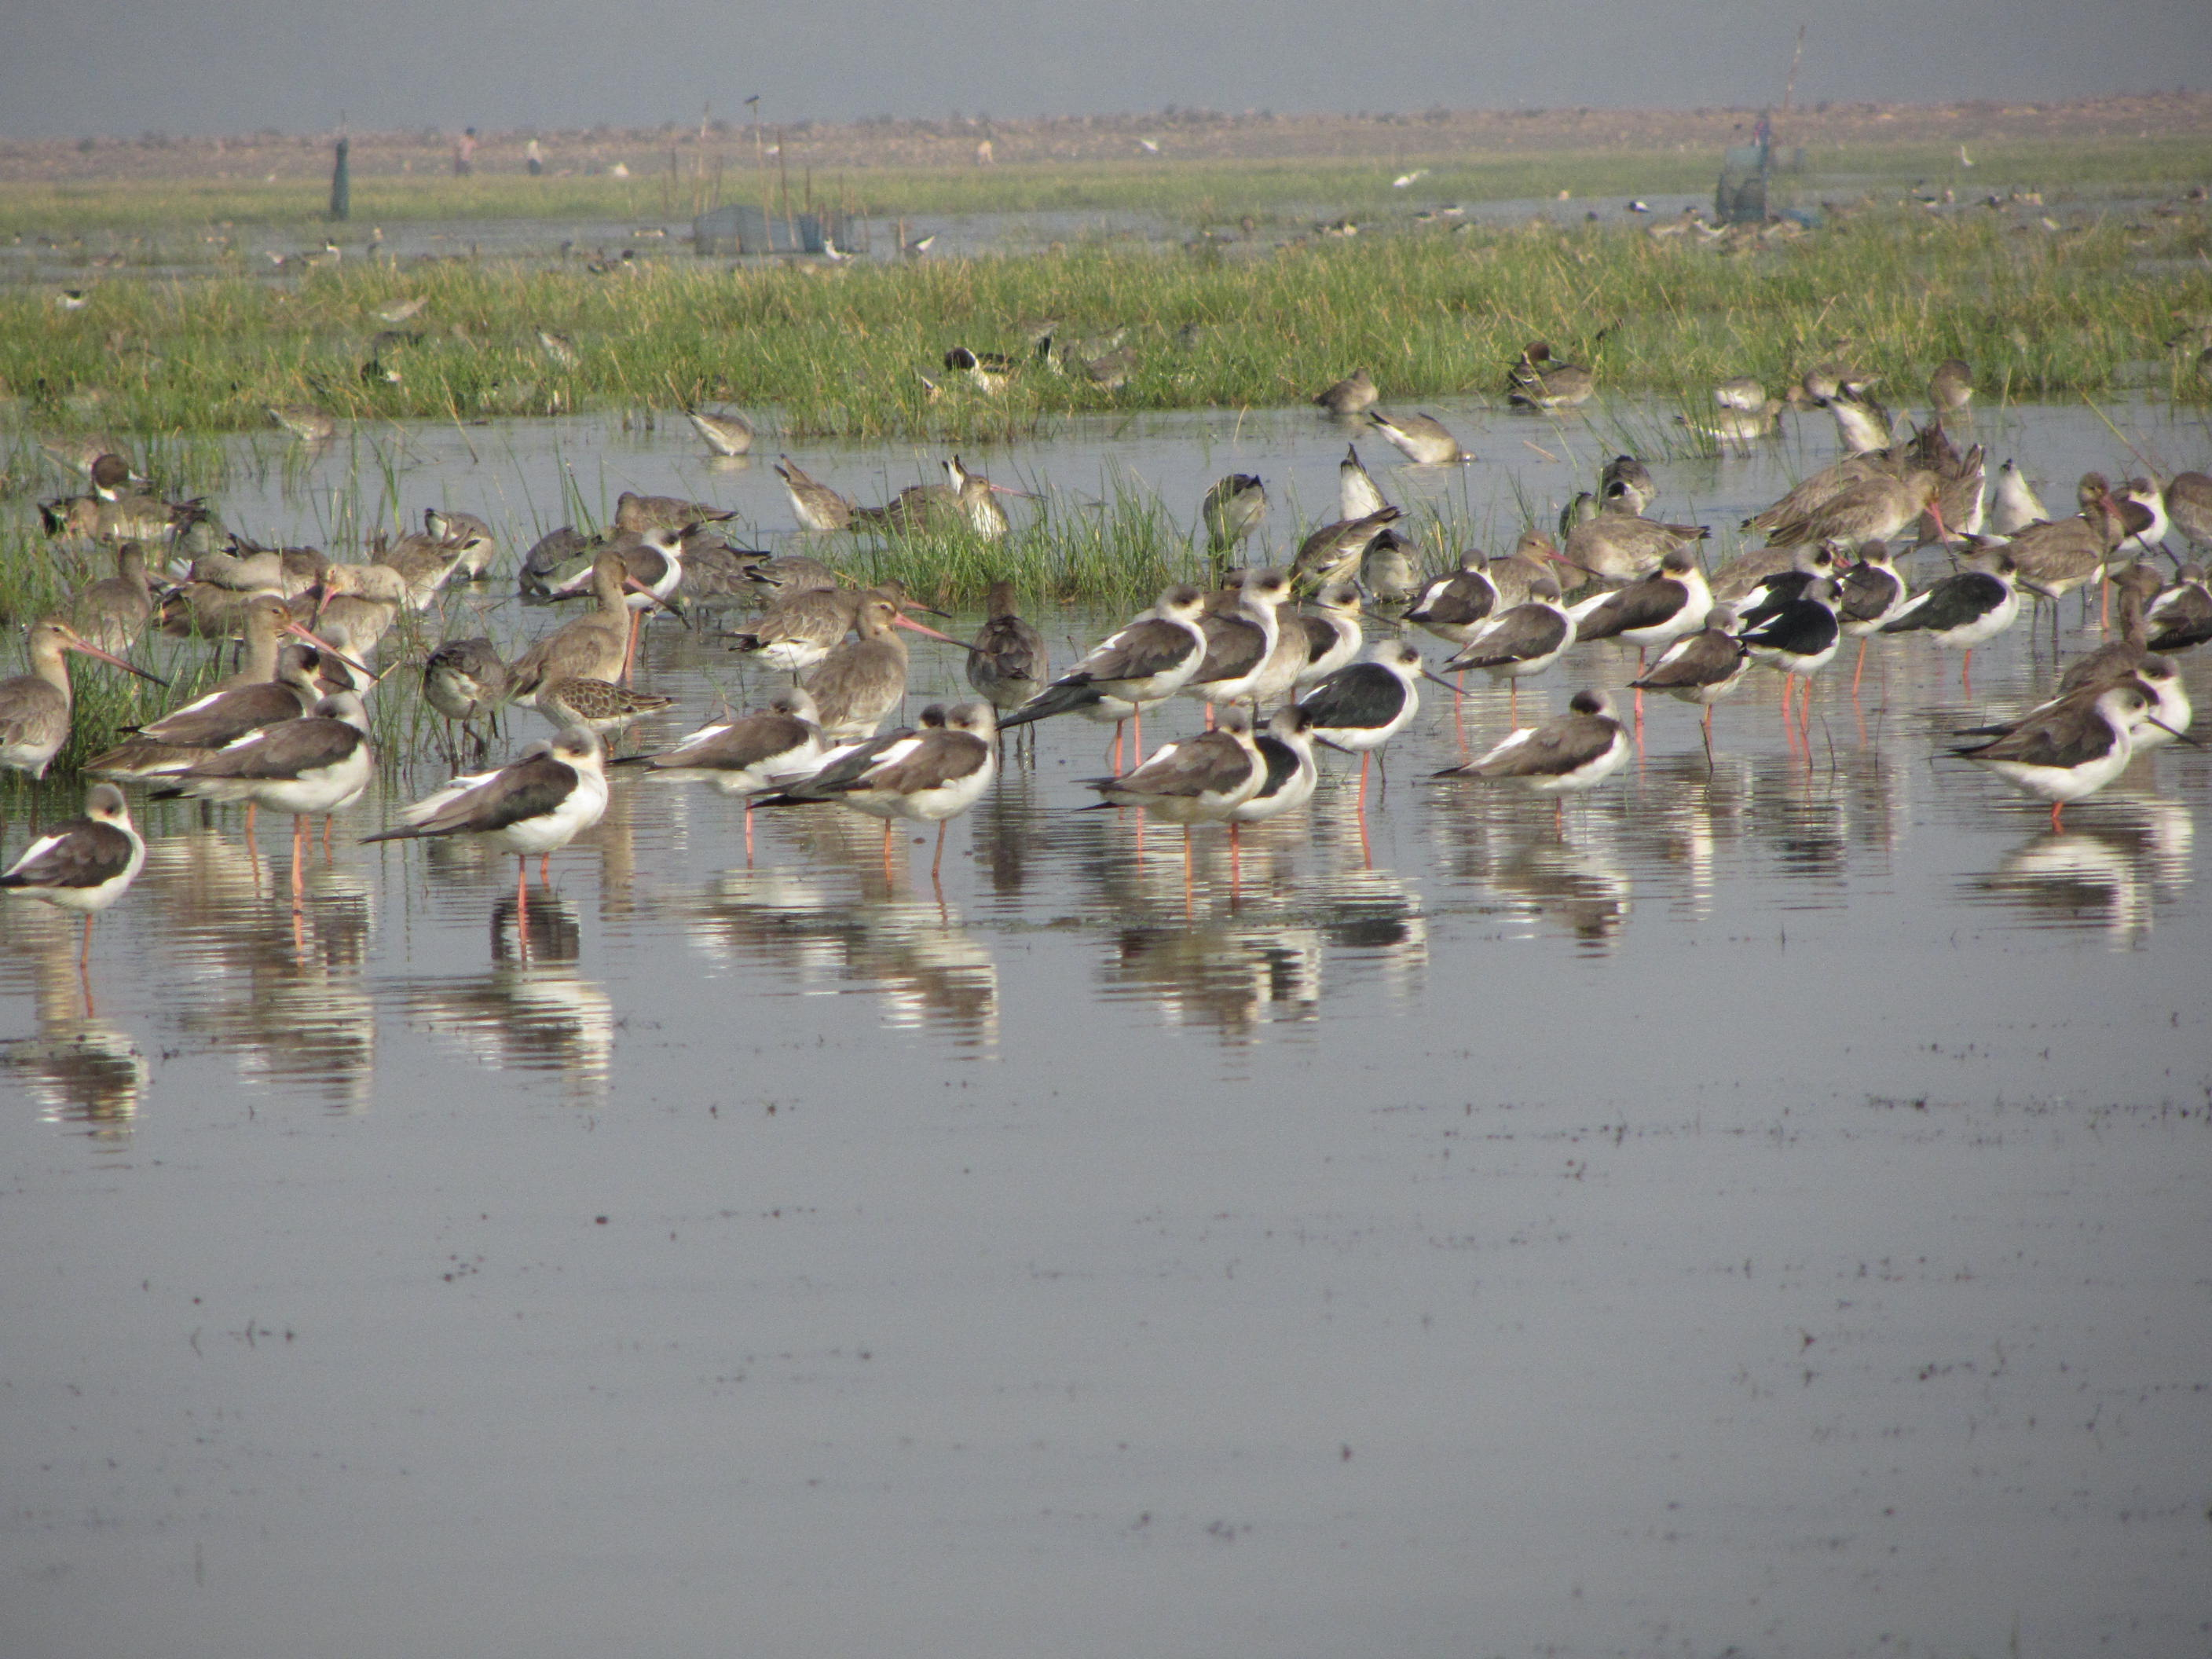 A flock of Stints and Godwits